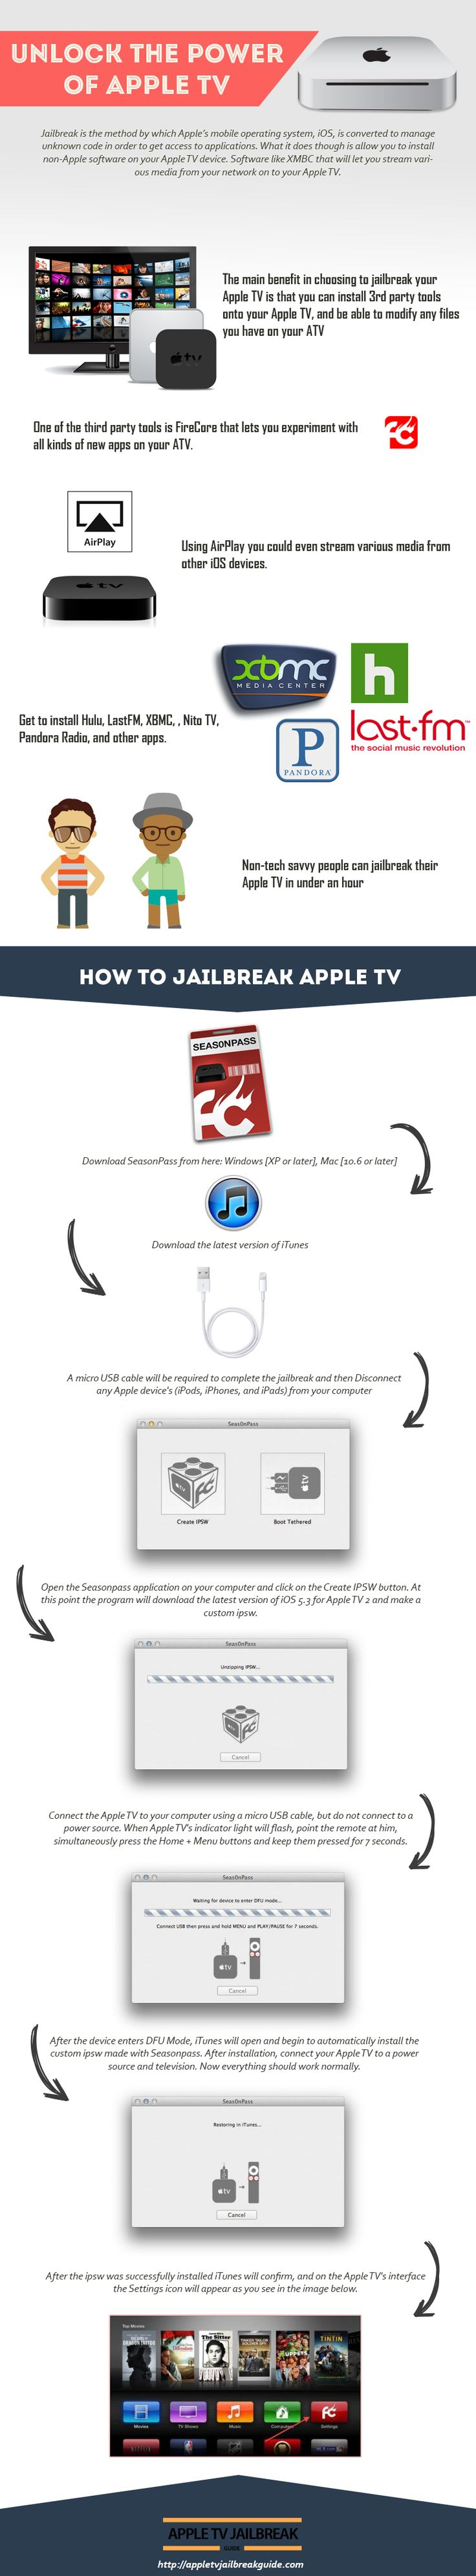 The following infographic pulls together the basics of Apple TV jailbreak process. #apple #atv #jailbreak #hack